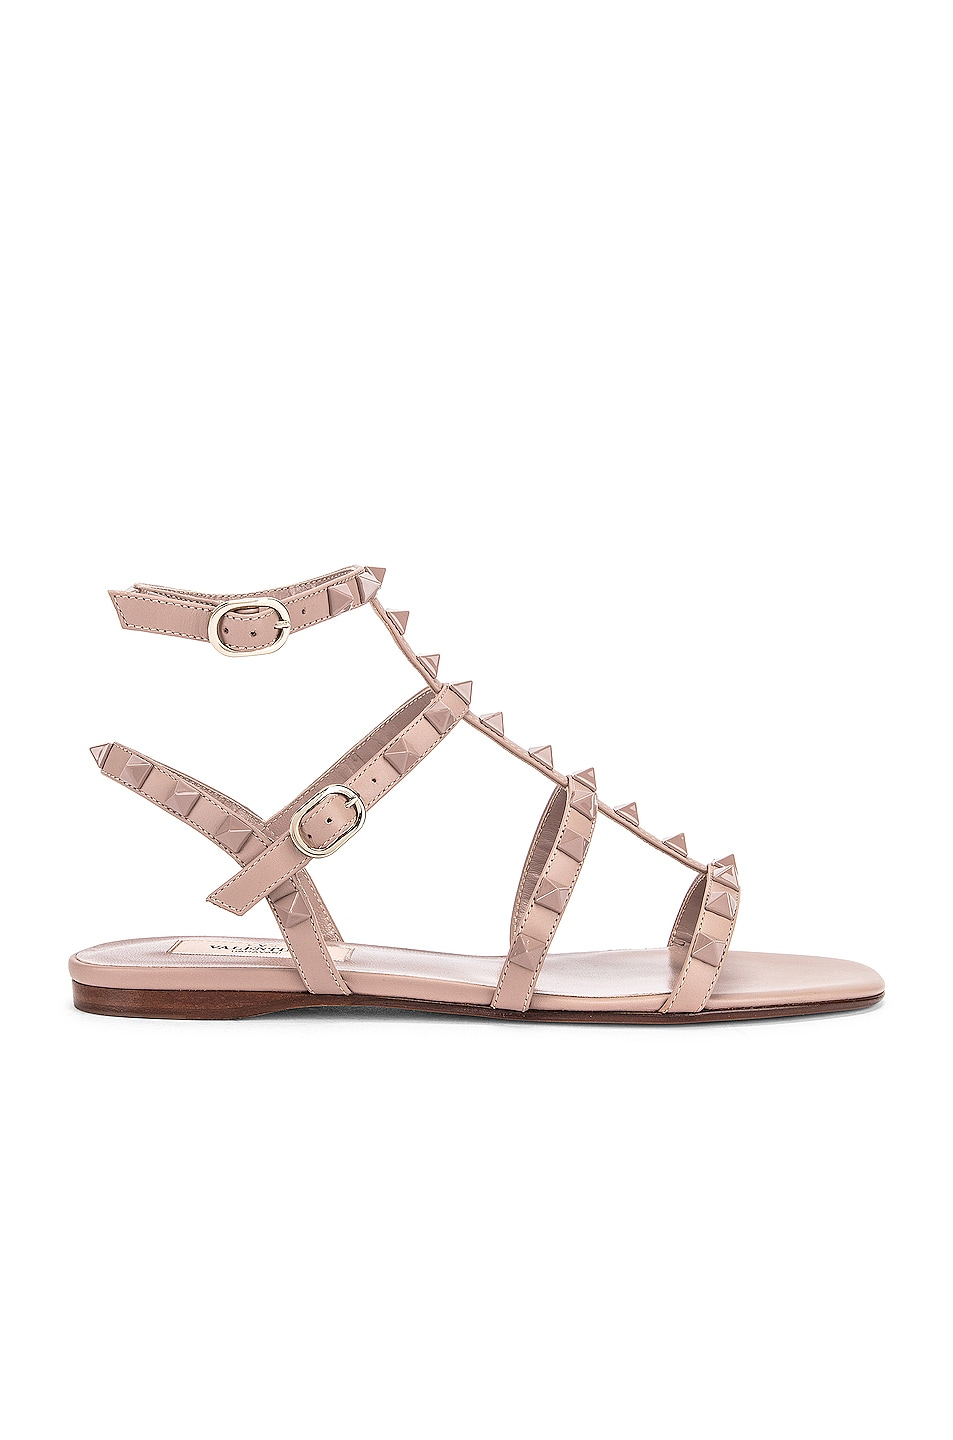 Image 1 of Valentino Rockstud Sandals in Poudre